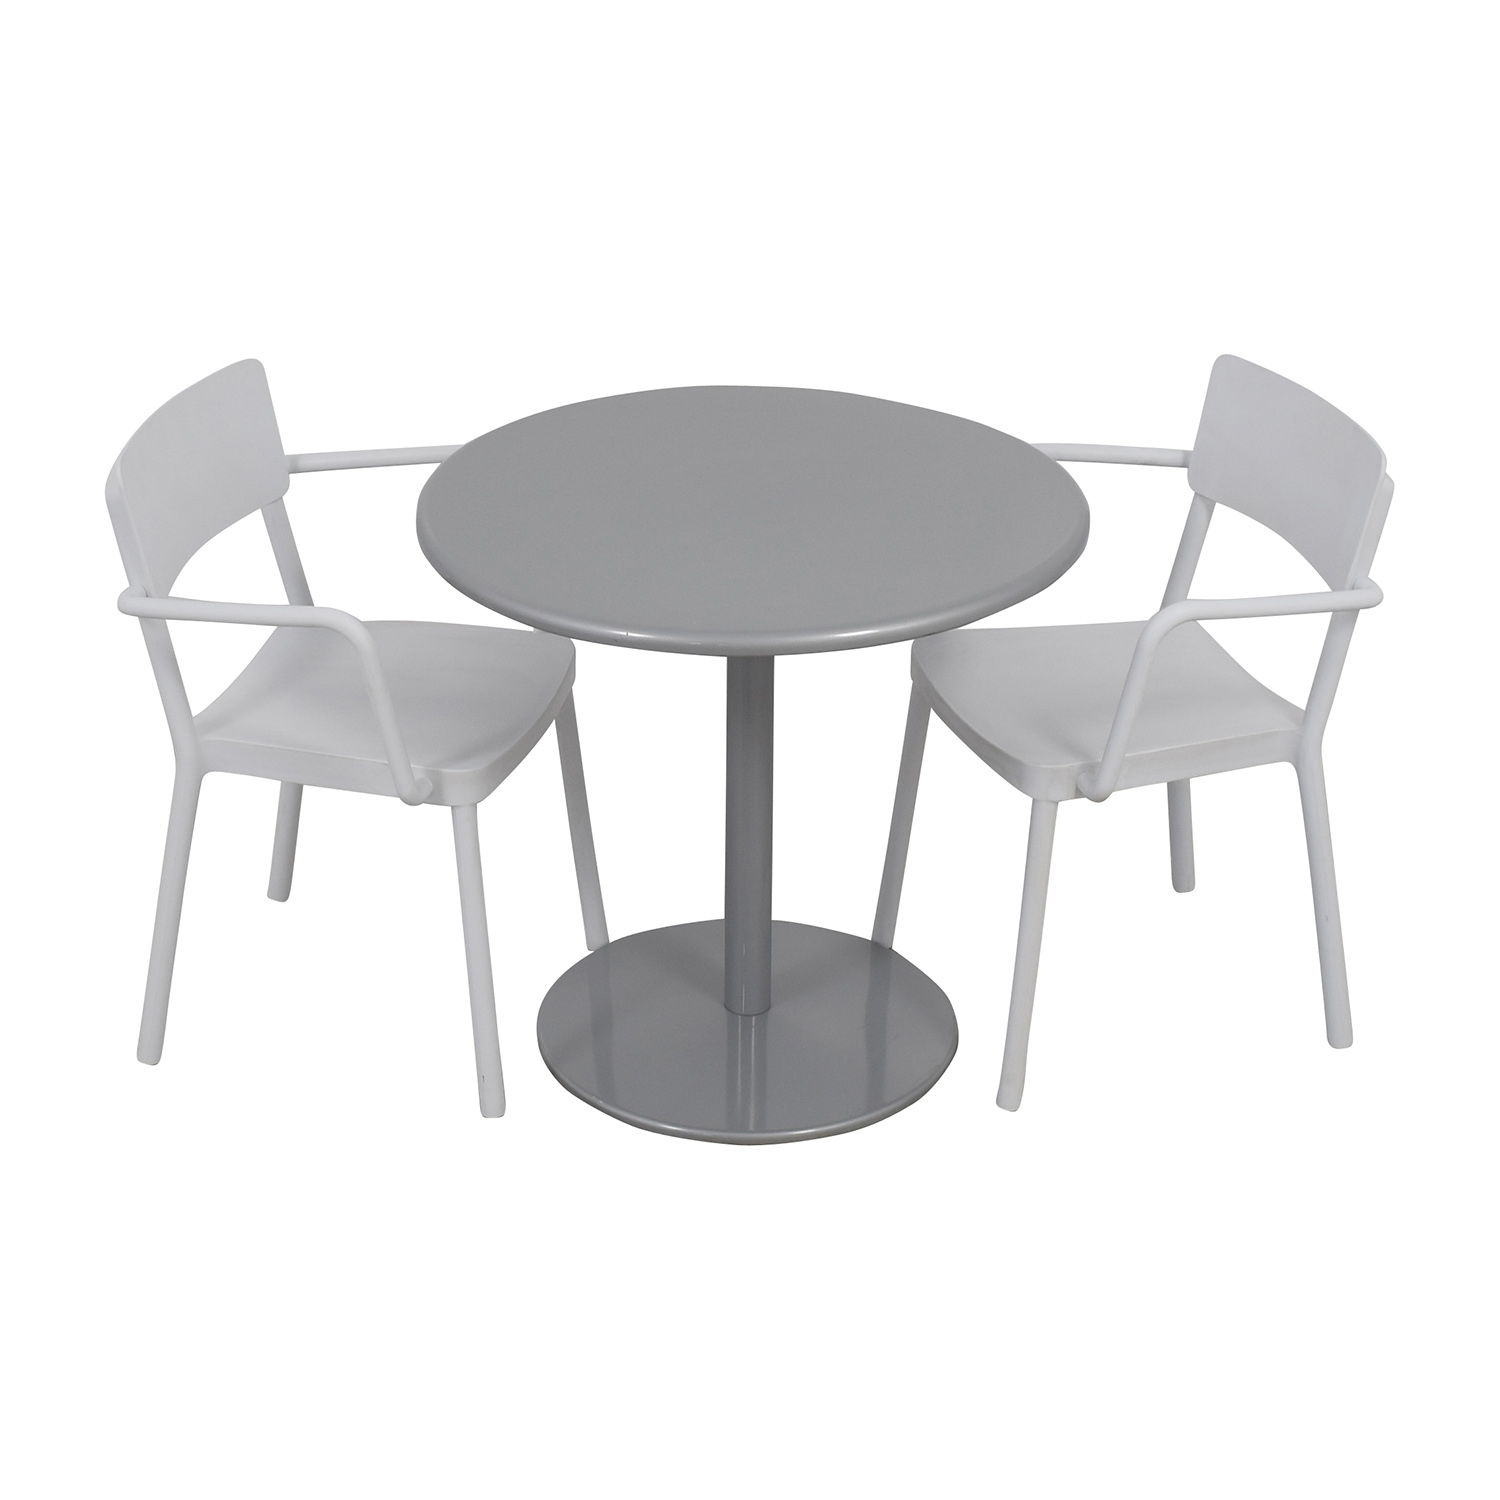 85% OFF - Design Within Reach Design Within Reach Bistro Table and ...